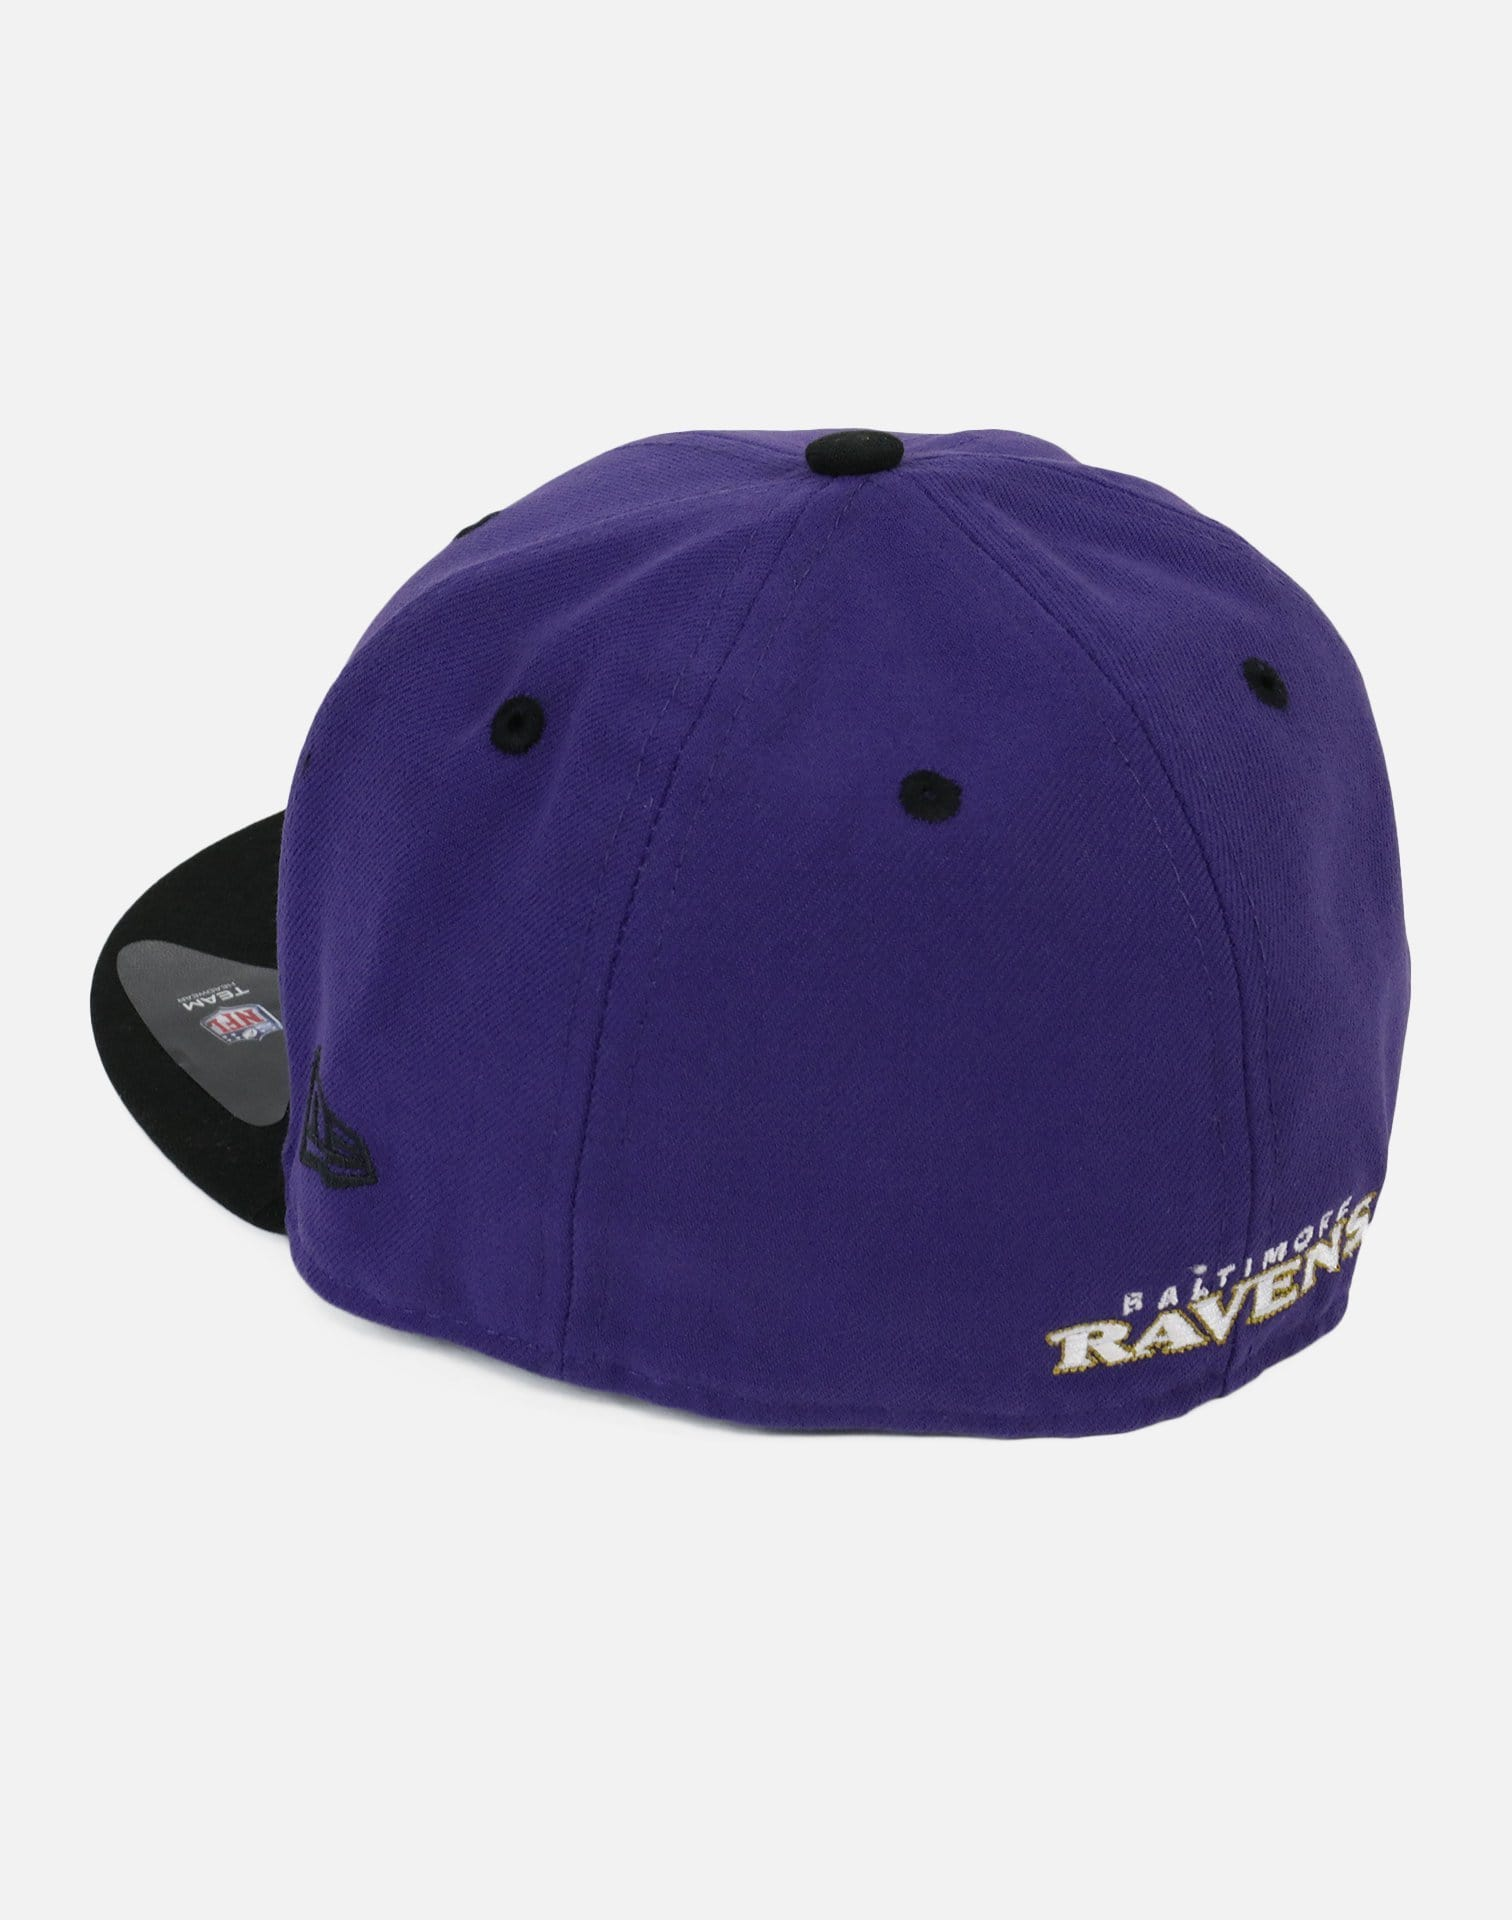 New Era Baltimore Ravens Authentic Fitted Hat (Purple/Black)